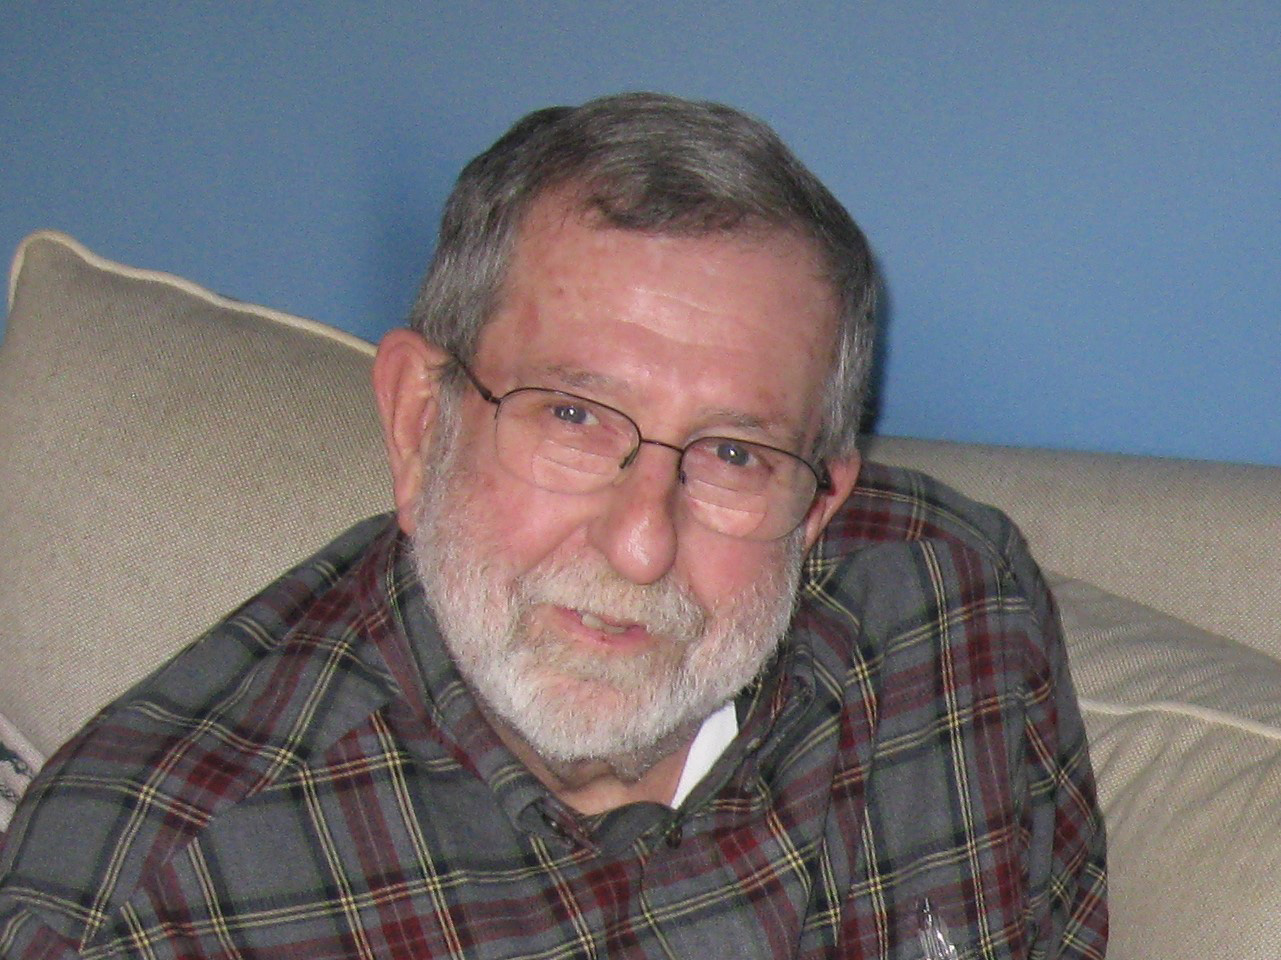 Dr. Charles Carter, former chair of the Department of English and Modern Languages